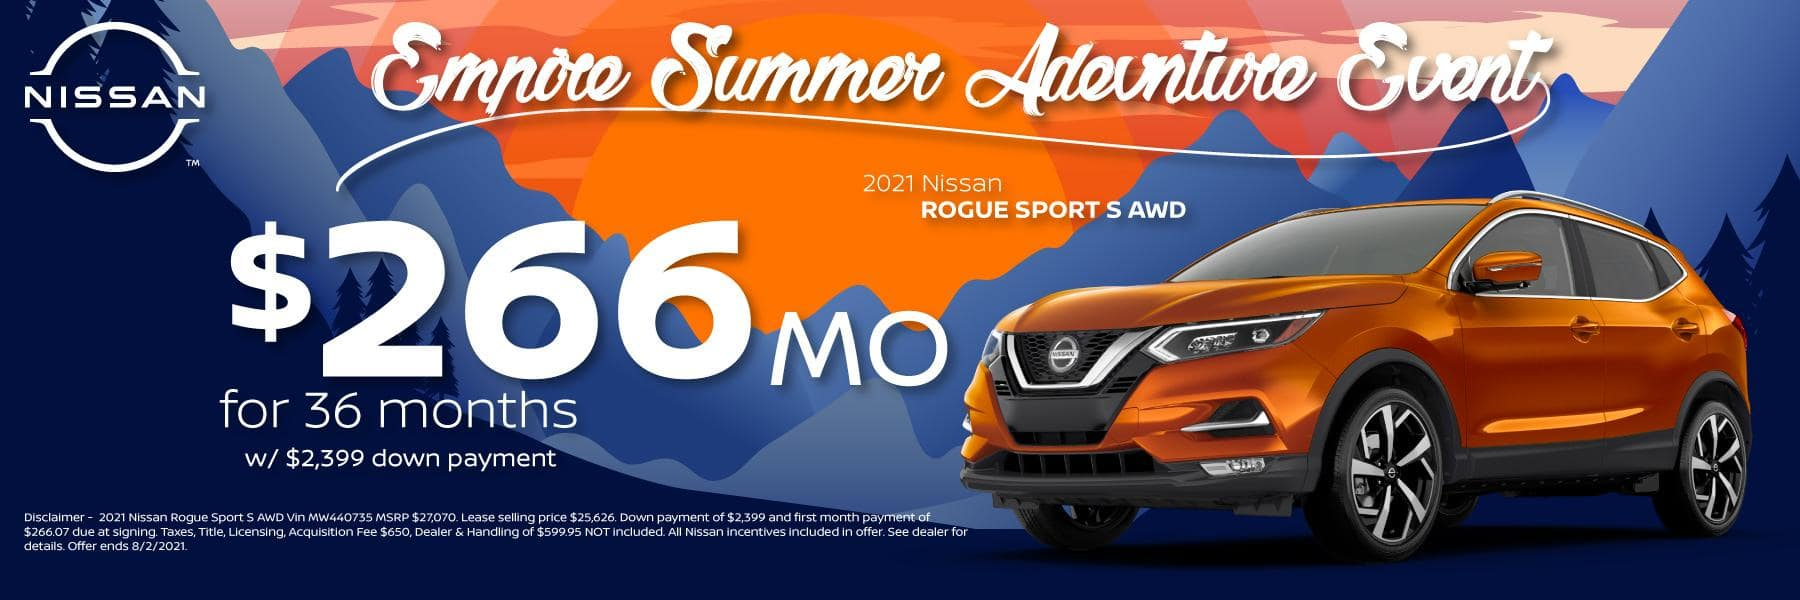 Best New 2021 Nissan Rogue Sport Lease and Purchase Specials in Denver, CO